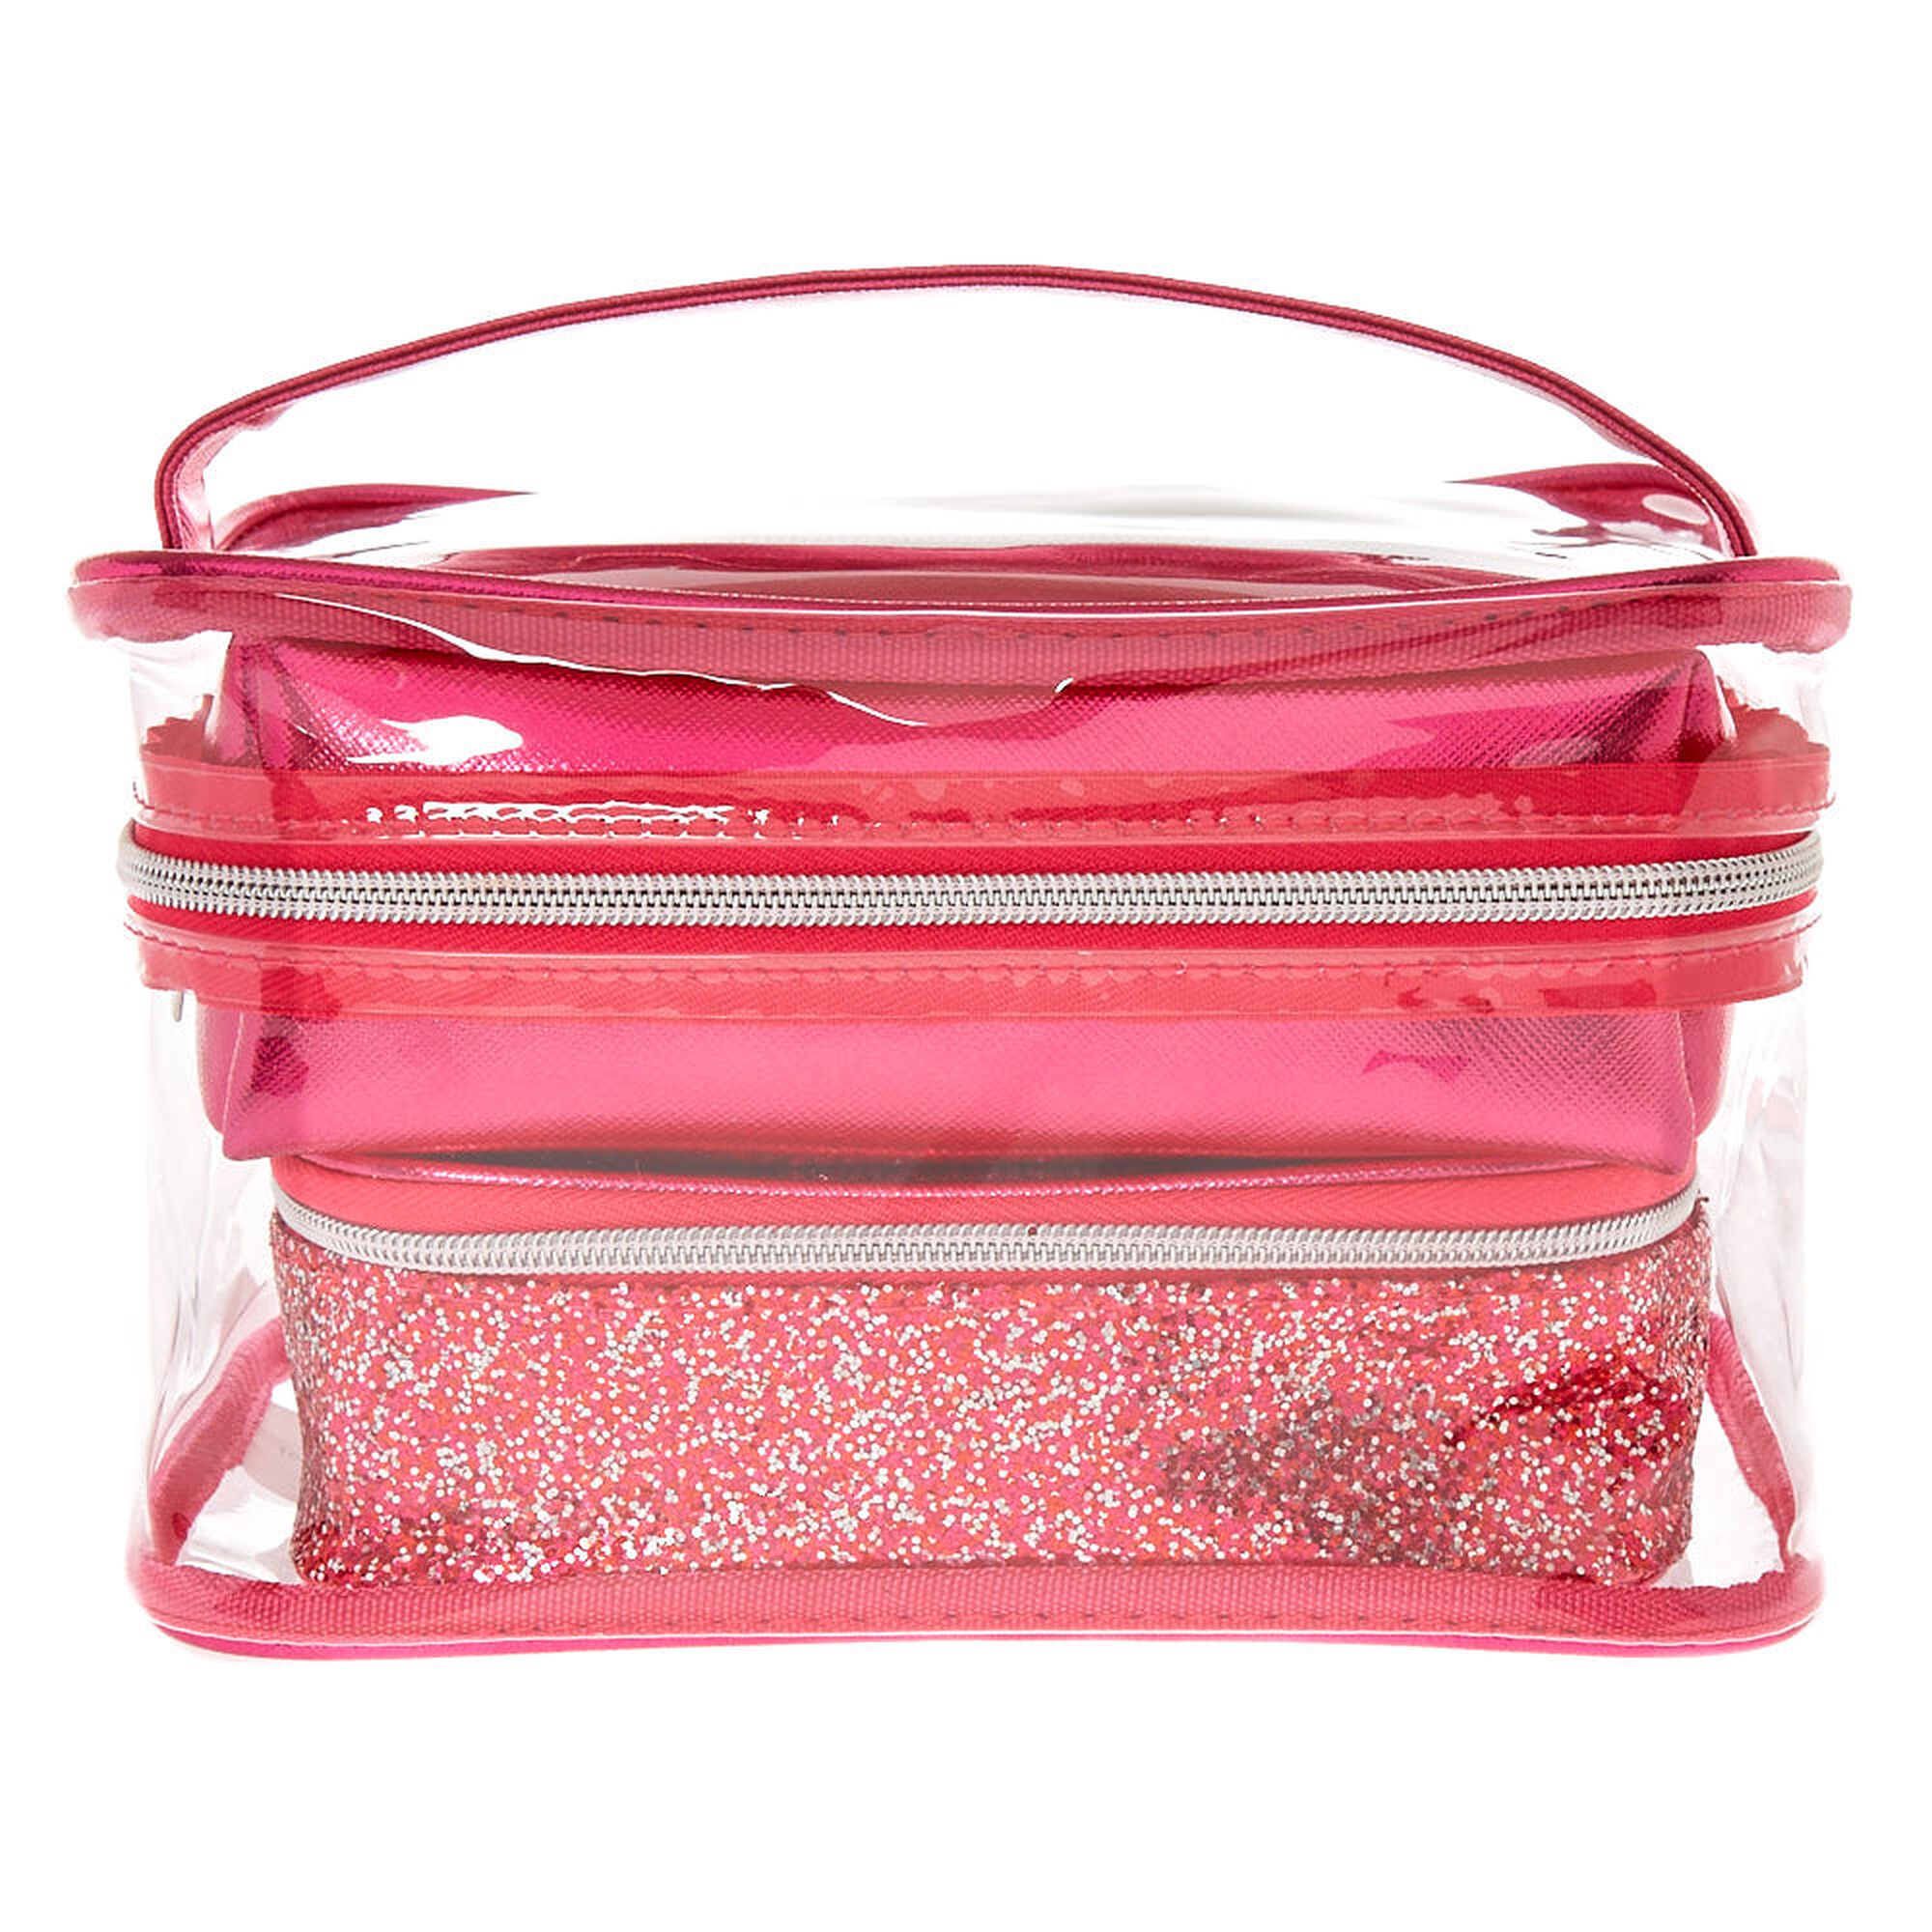 Enchante Accessories Makeup Bag Style Guru Fashion Glitz Glamour Style Unplugged